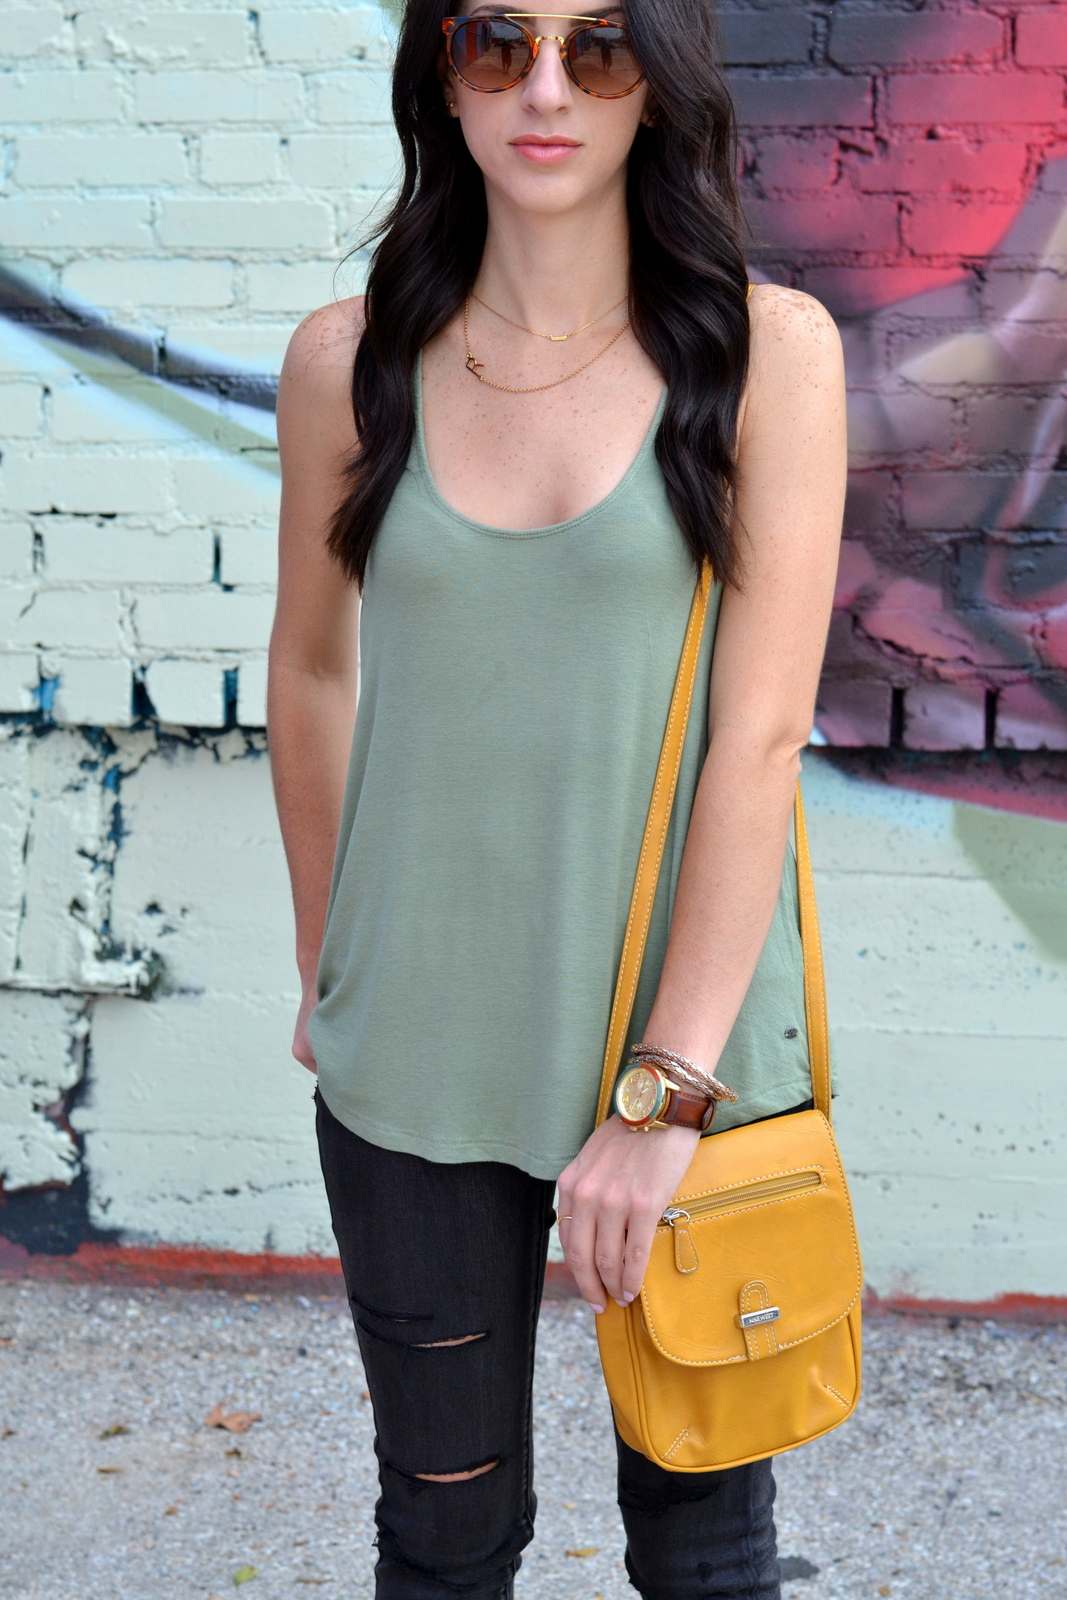 Loose Tank, Initial Necklace, Distressed Jeans